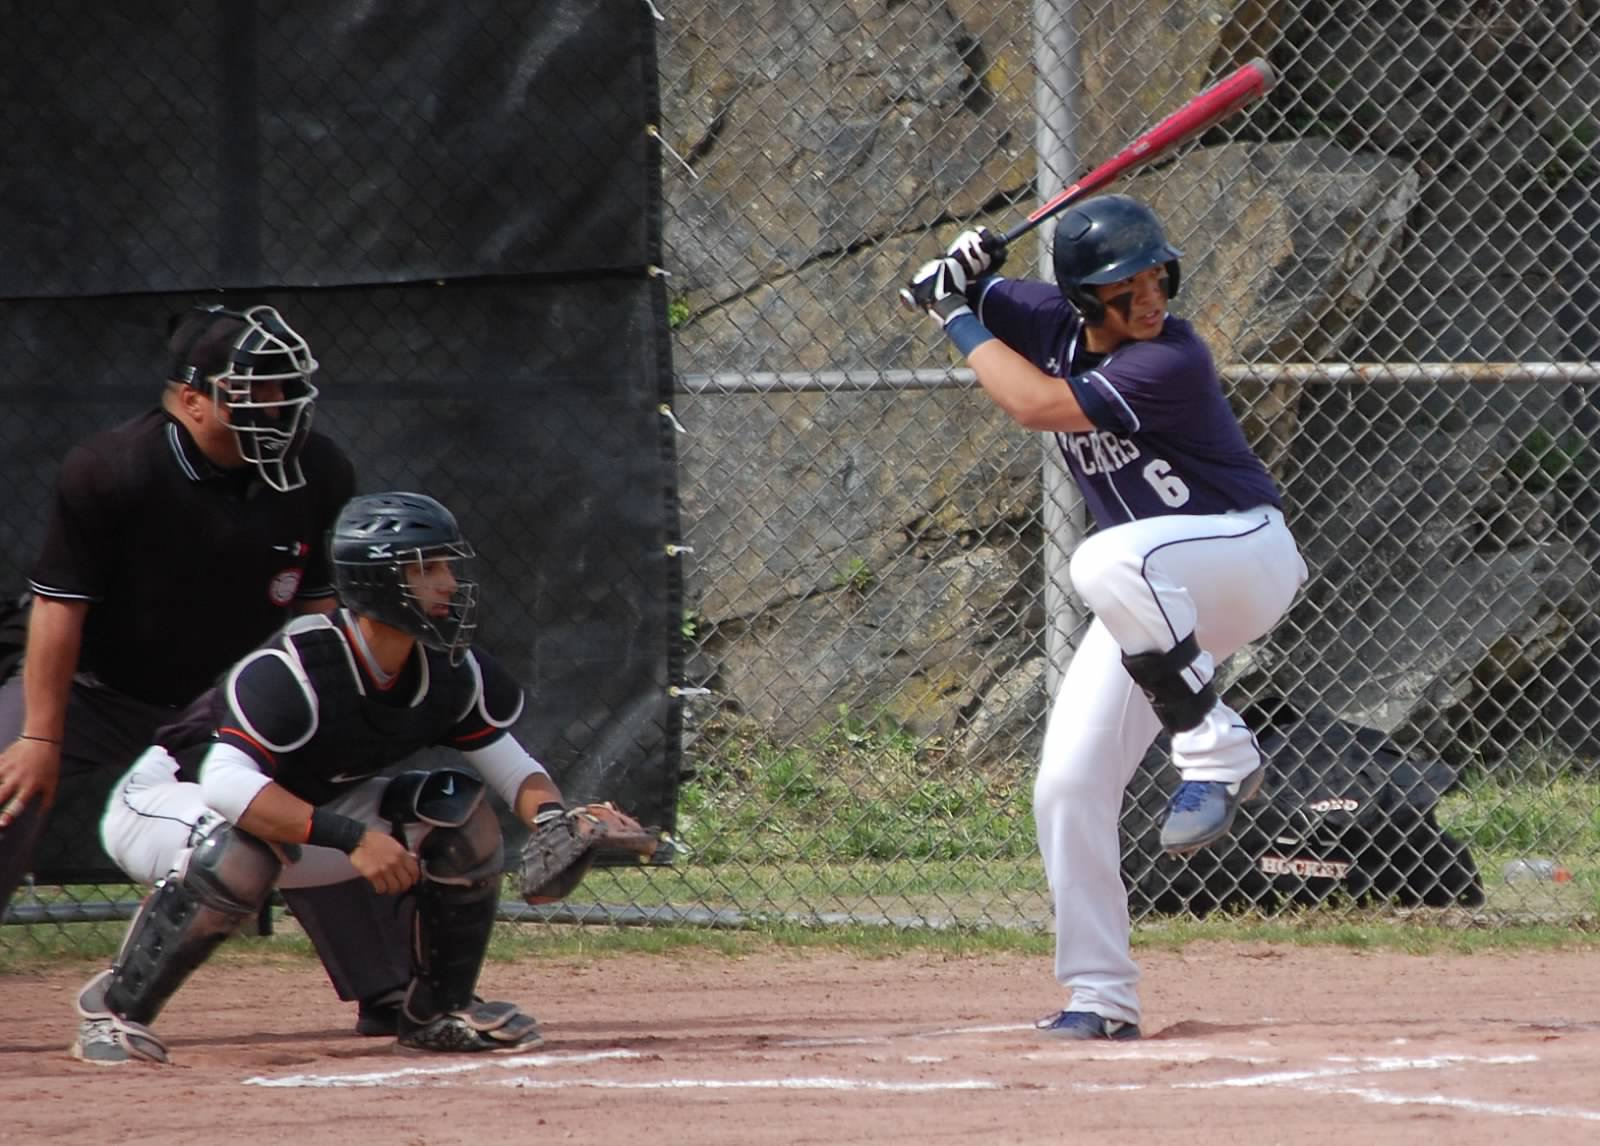 Noah Yokoi led the 13 hit attack with 3 Hits on Wednesday in Stamford!